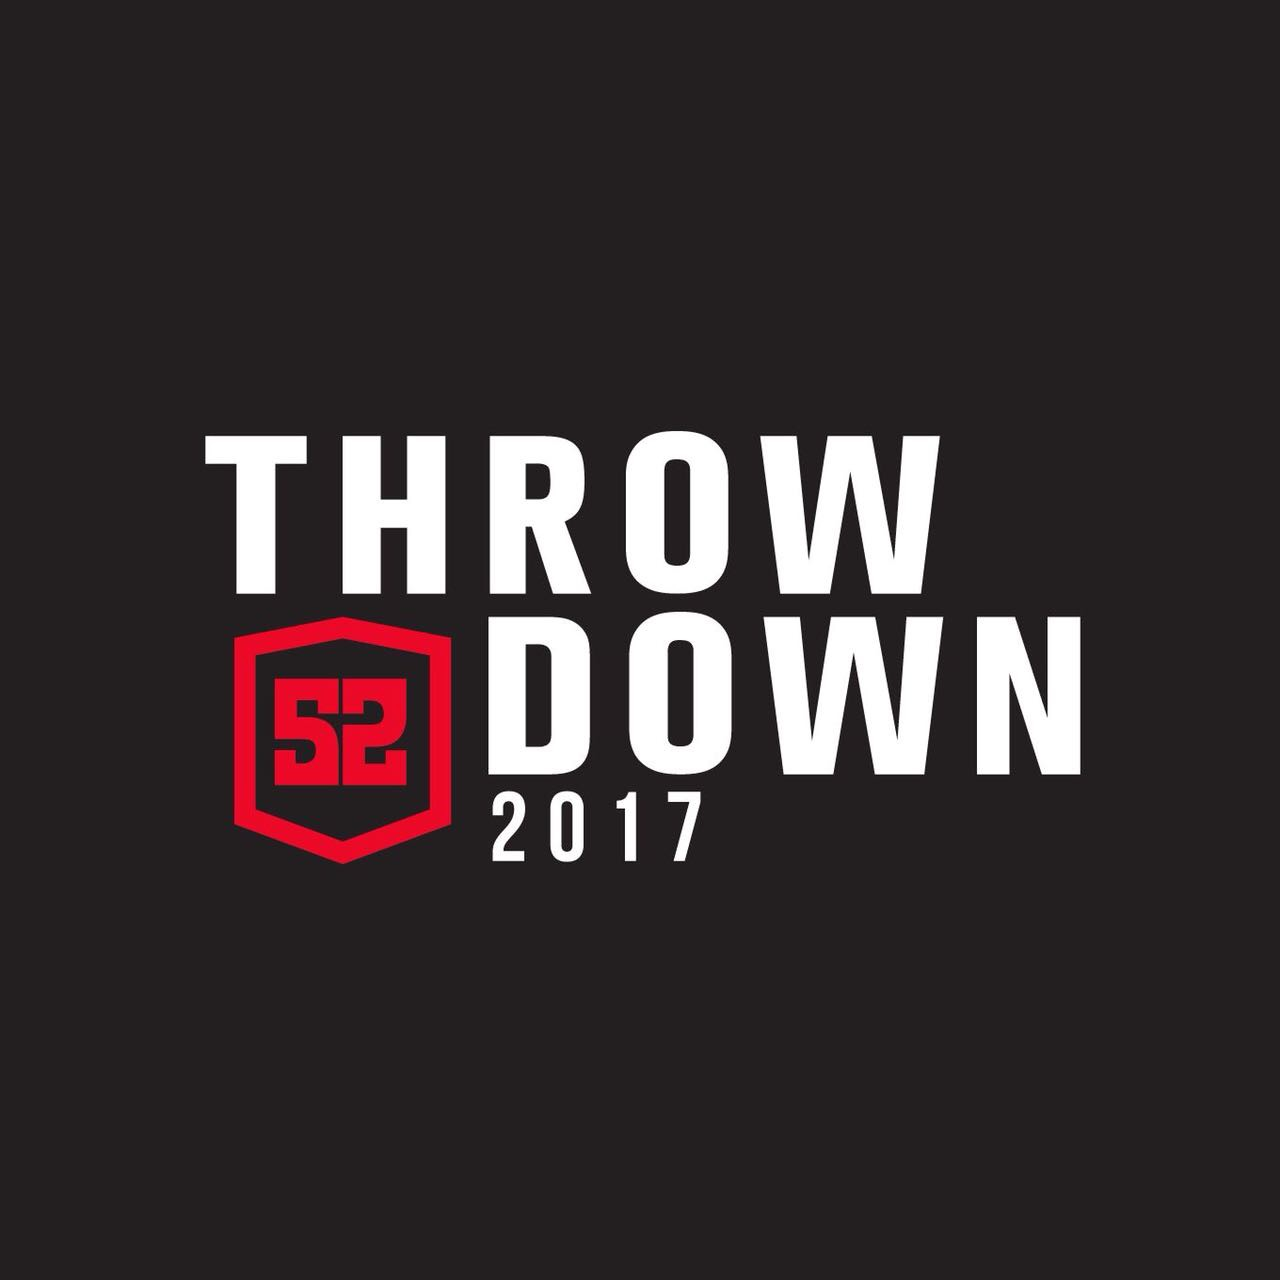 Throwdown 52